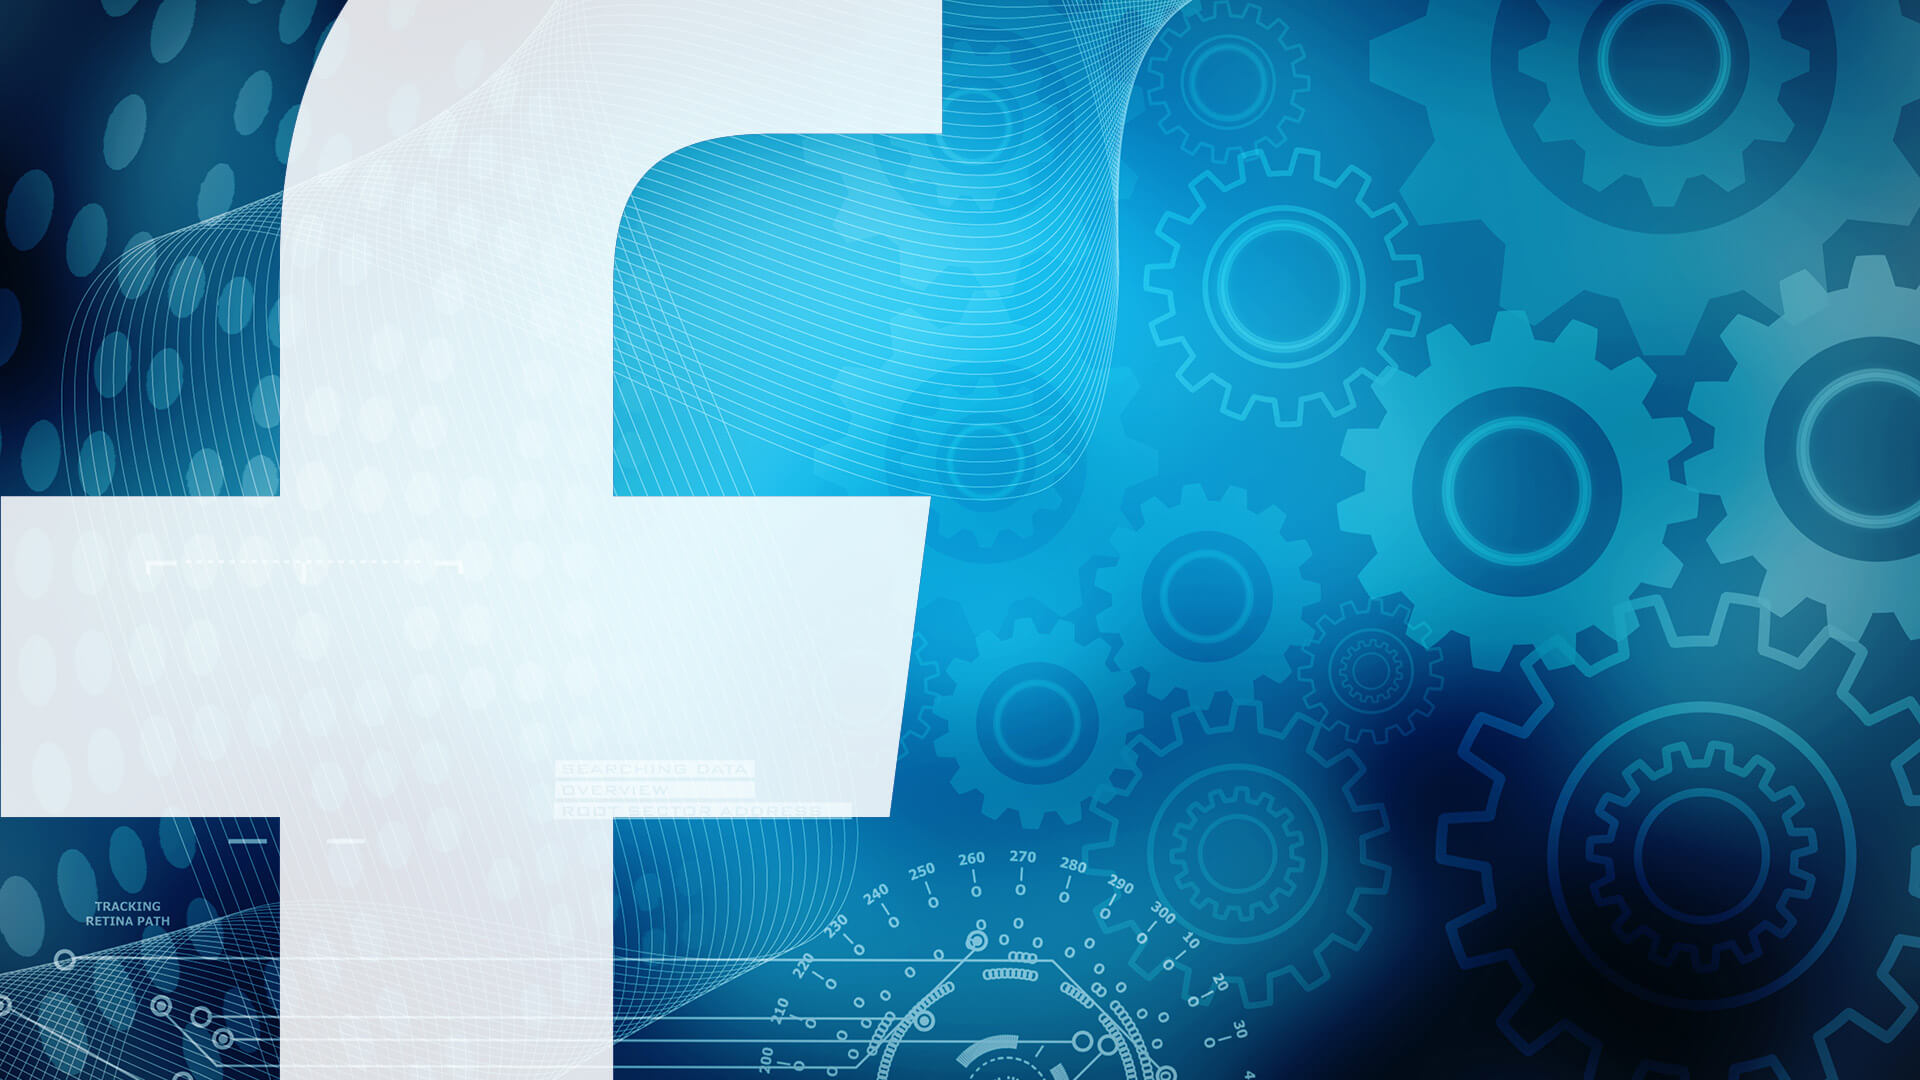 facebook-tech-gears-data2-ss-1920.jpg